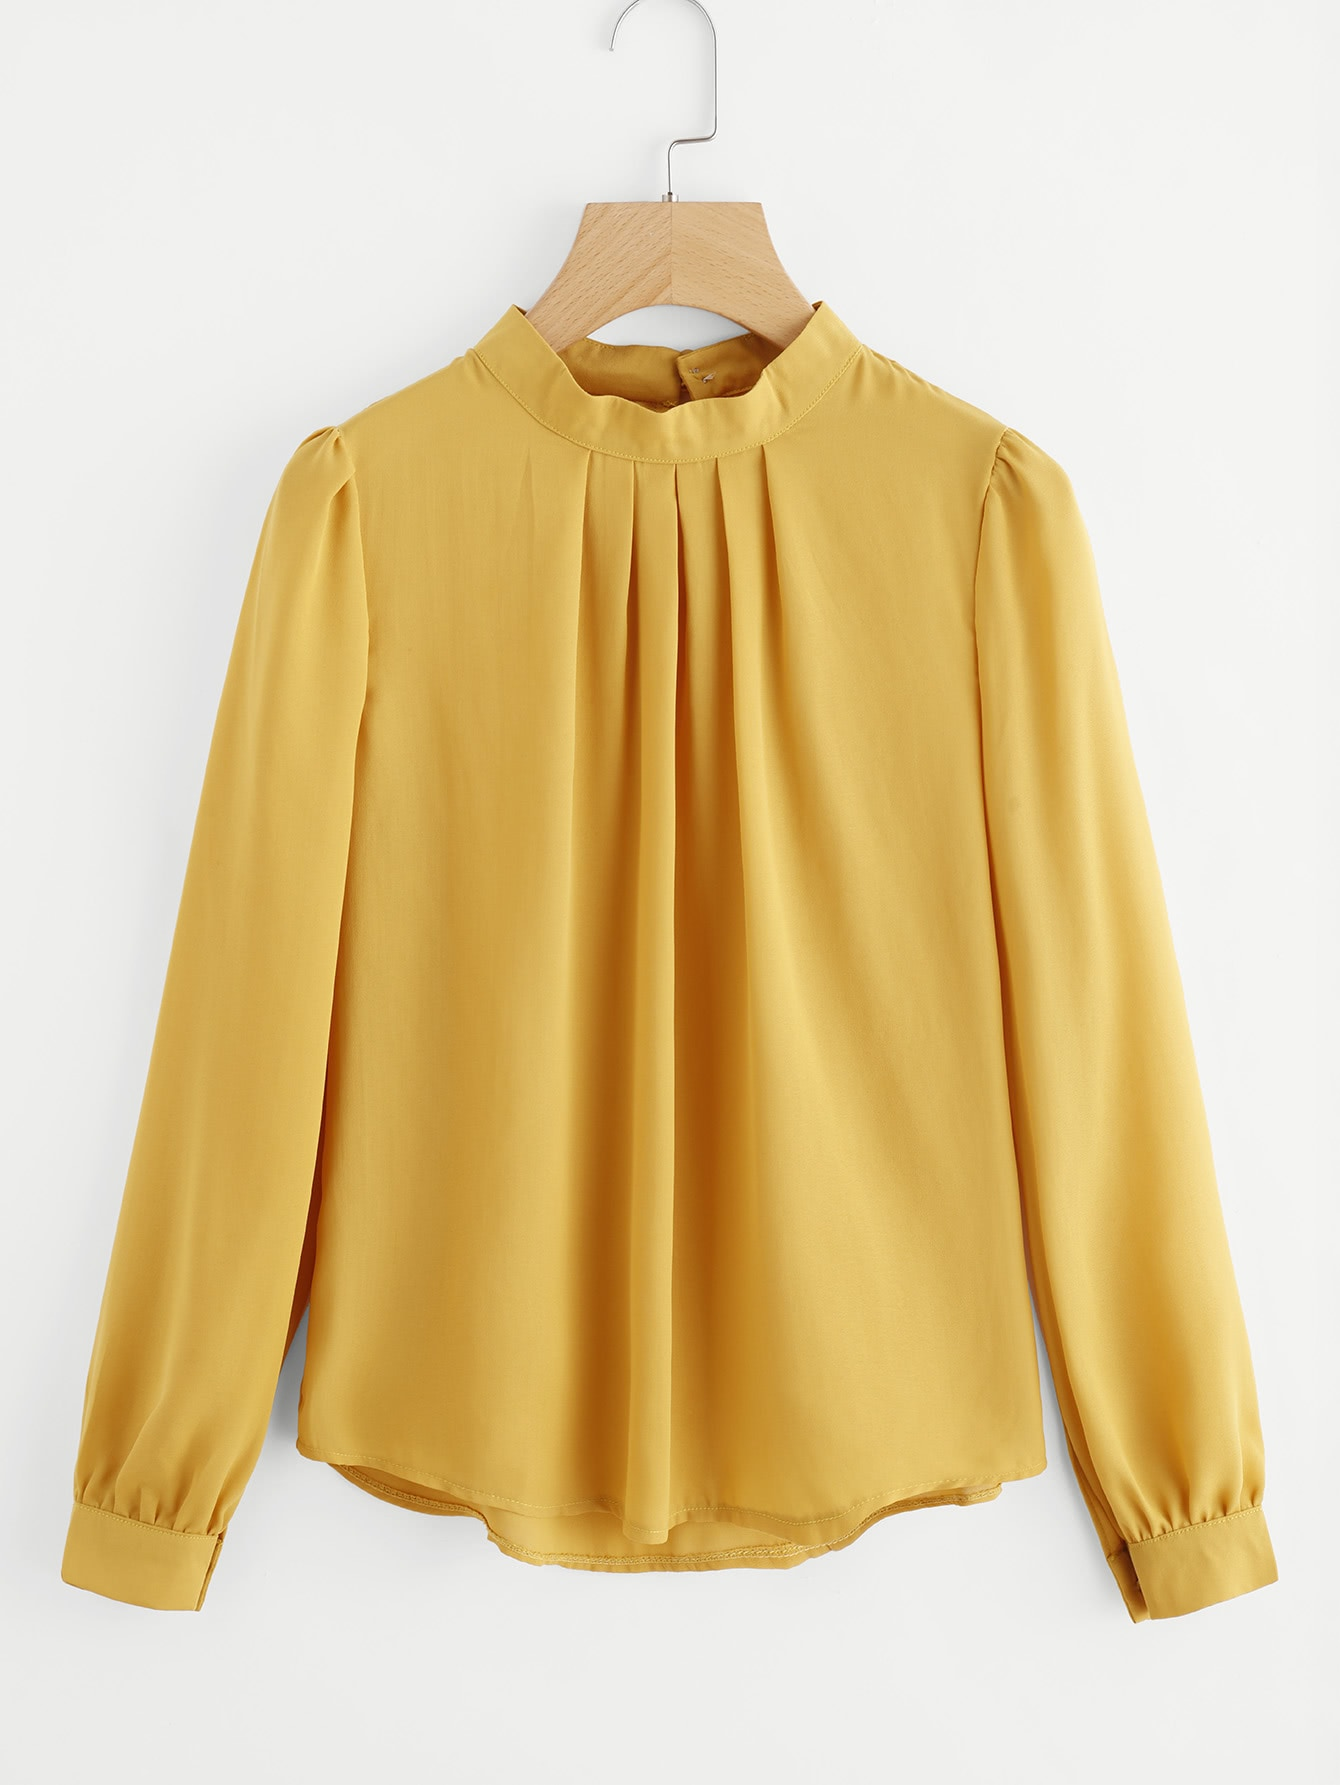 Pleated Detail Button Keyhole Back Chiffon Blouse pleated button collar blouse